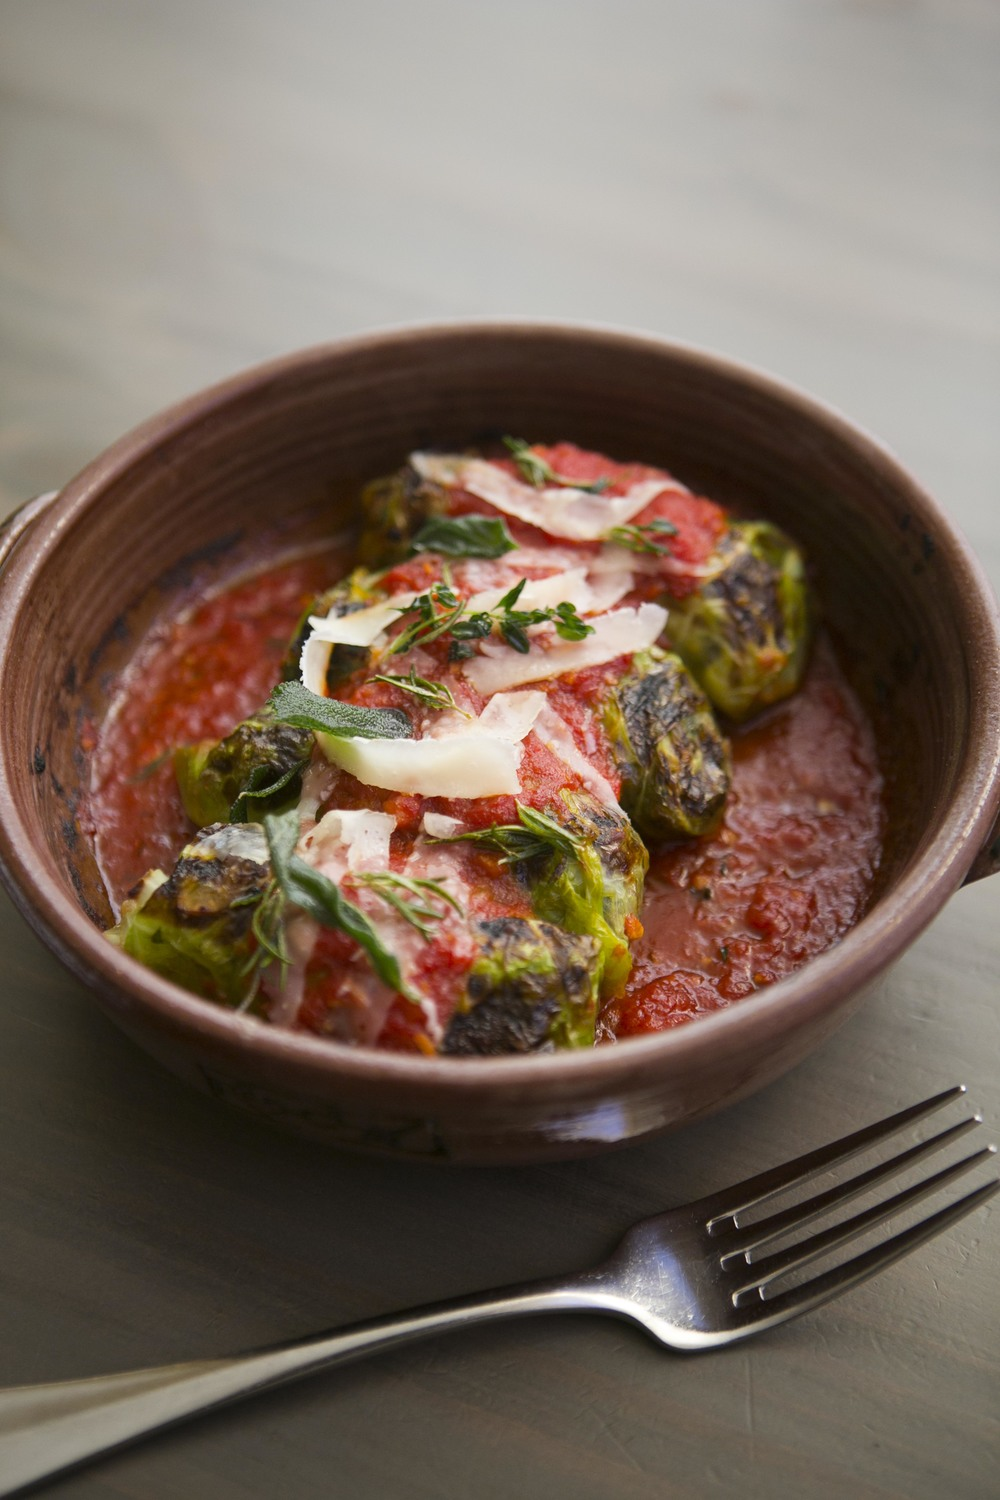 Vegetarian Stuffed Cabbage from Jody Adams of Rialto (Photograph by Brian Samuels)